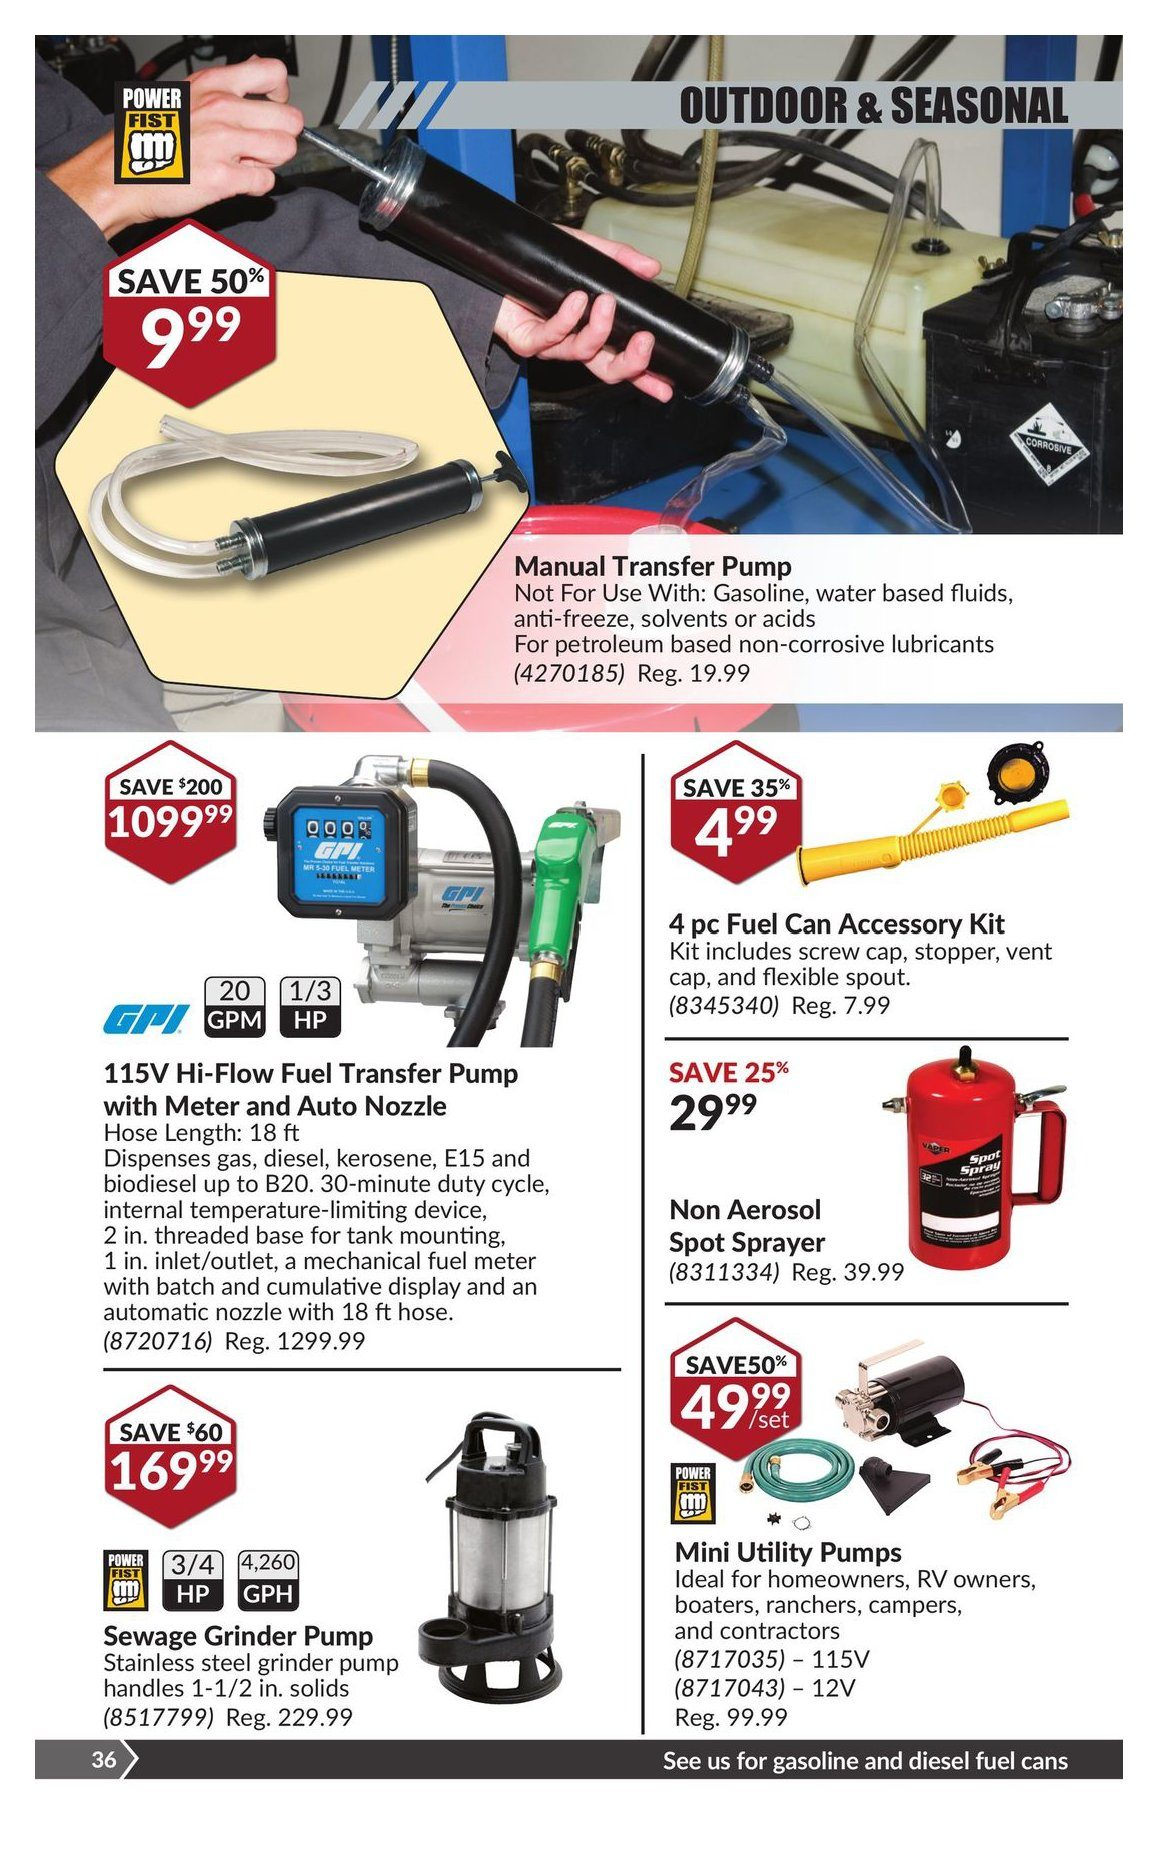 Princess Auto Weekly Flyer Stock Up For The Shop Oct 16 28 Thread Fixed Kenmore 80 Series Electric Dryer Heating But Not